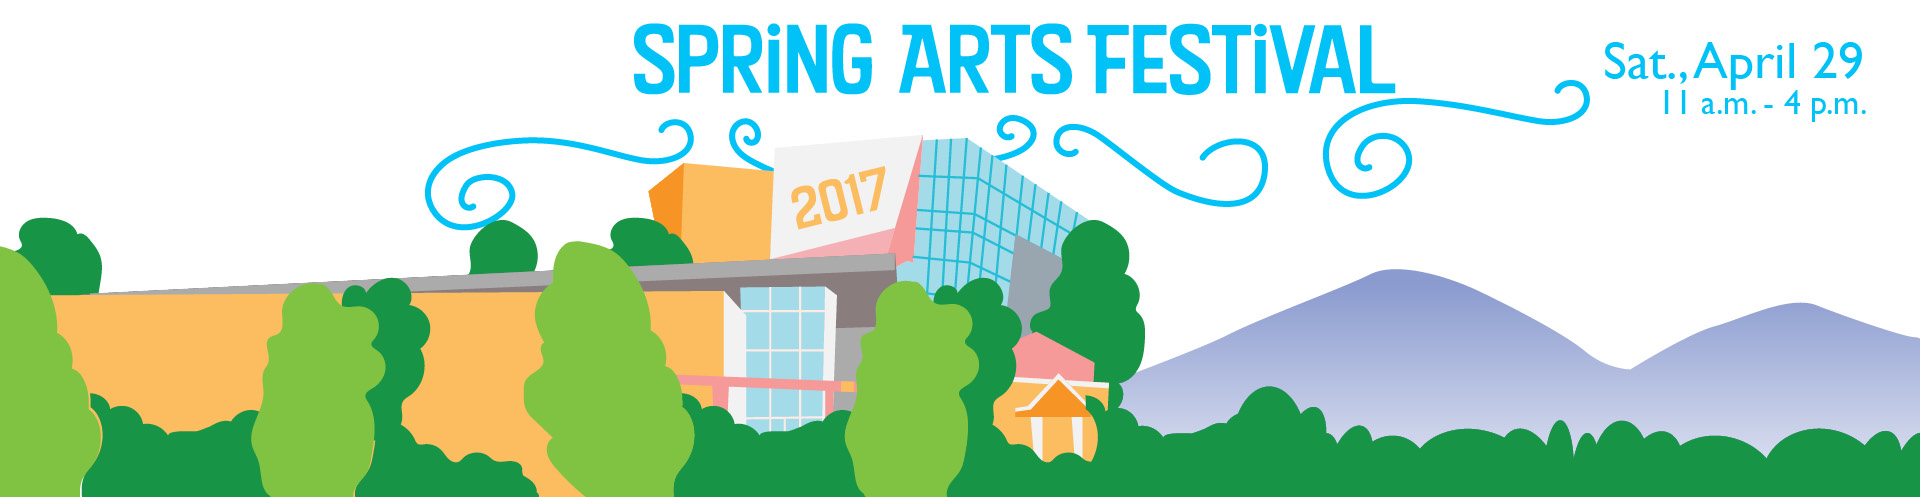 The Spring Arts Festival header graphic.